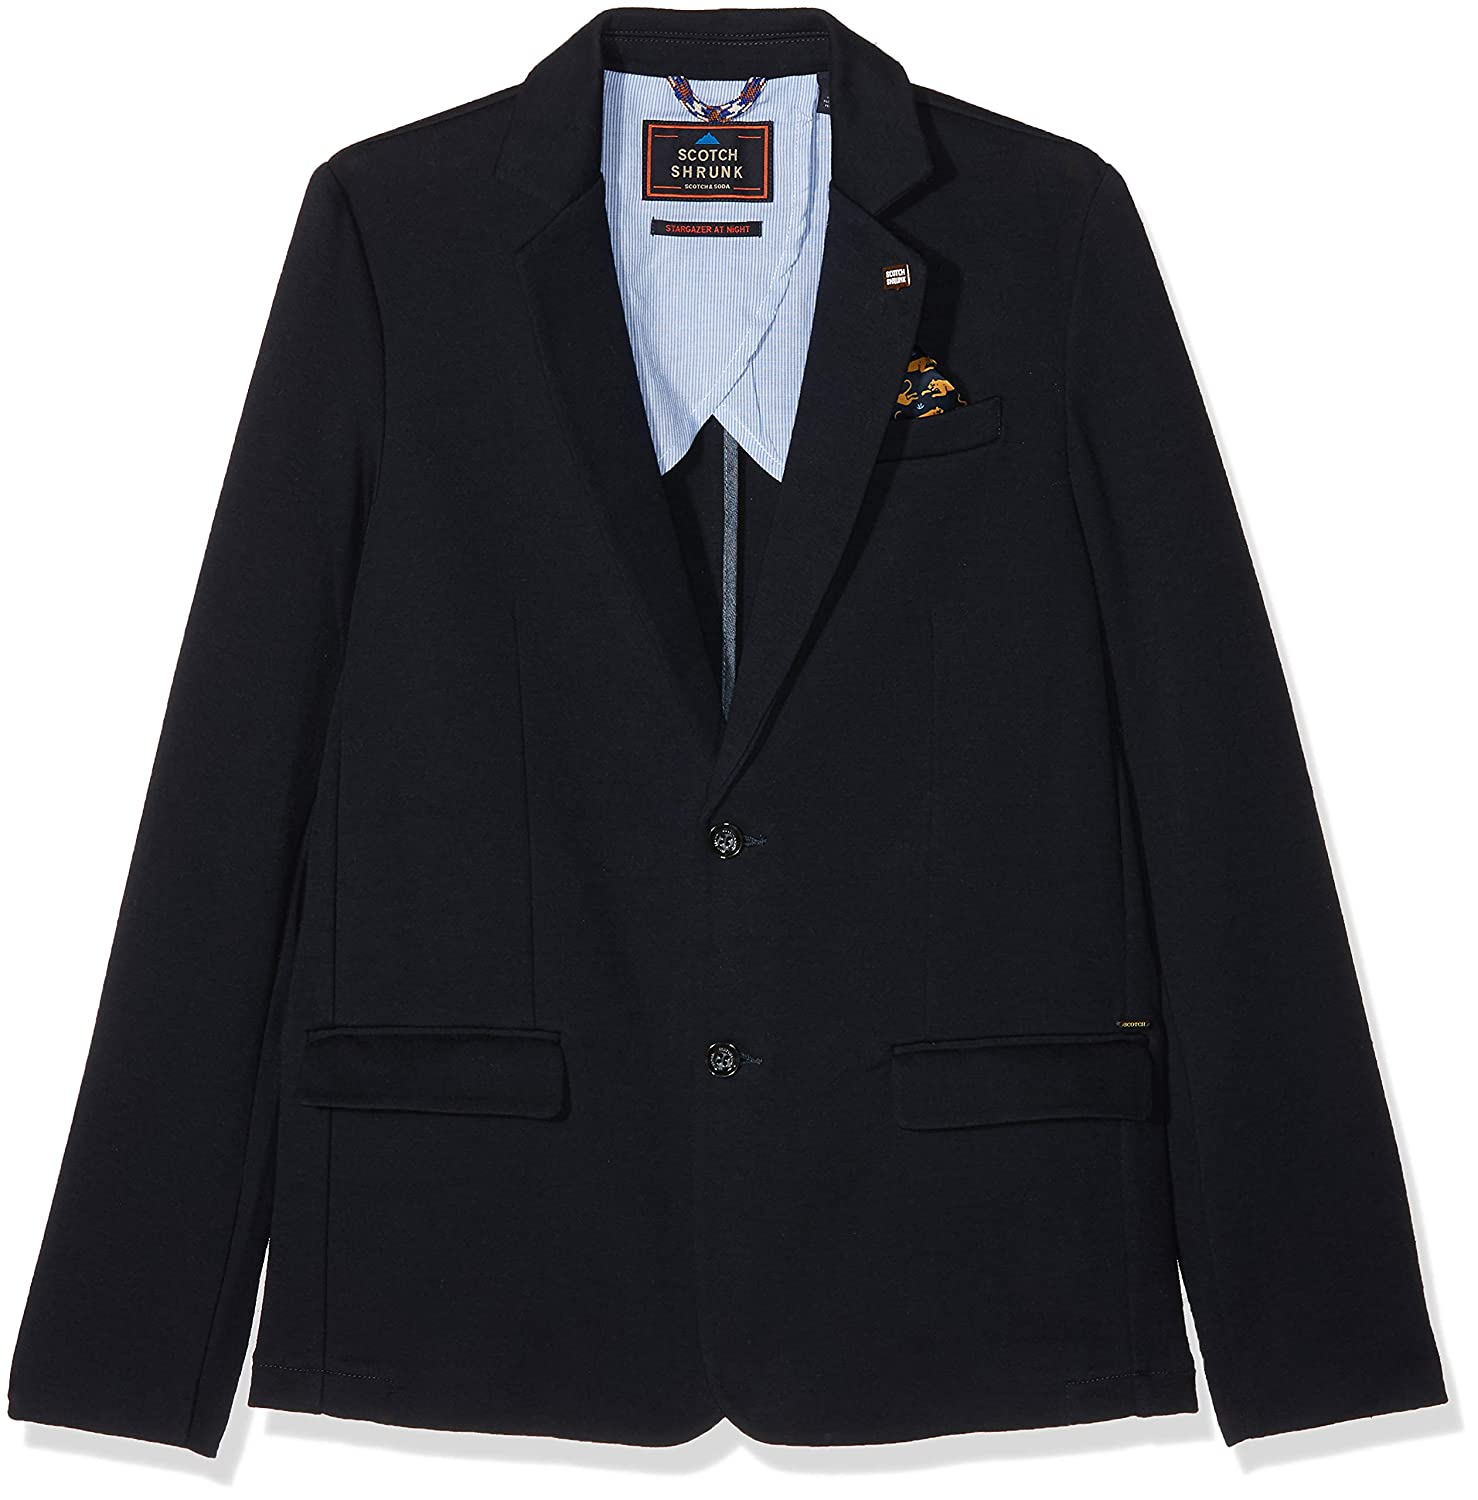 Scotch & Soda Heavy Jersey Blazer, Bambino Scotch & Soda Shrunk 147184